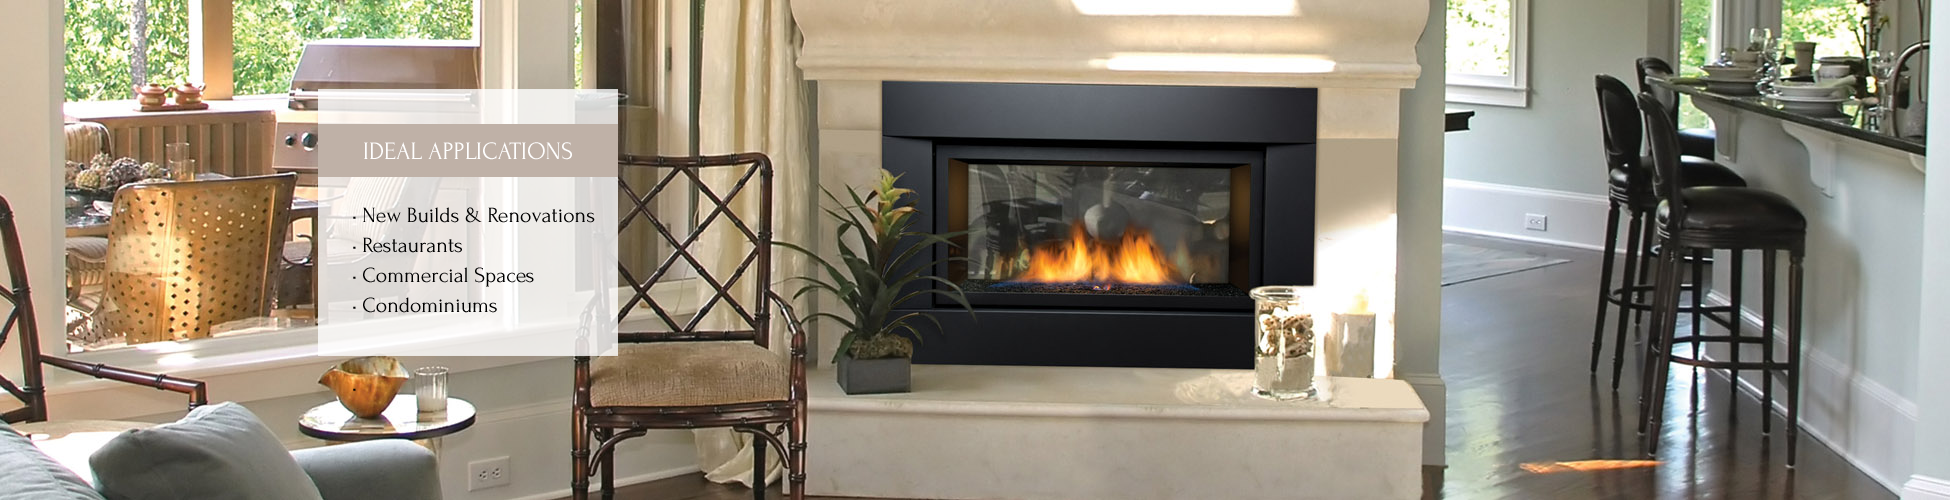 Palisade gas fireplace by Sierra Flame